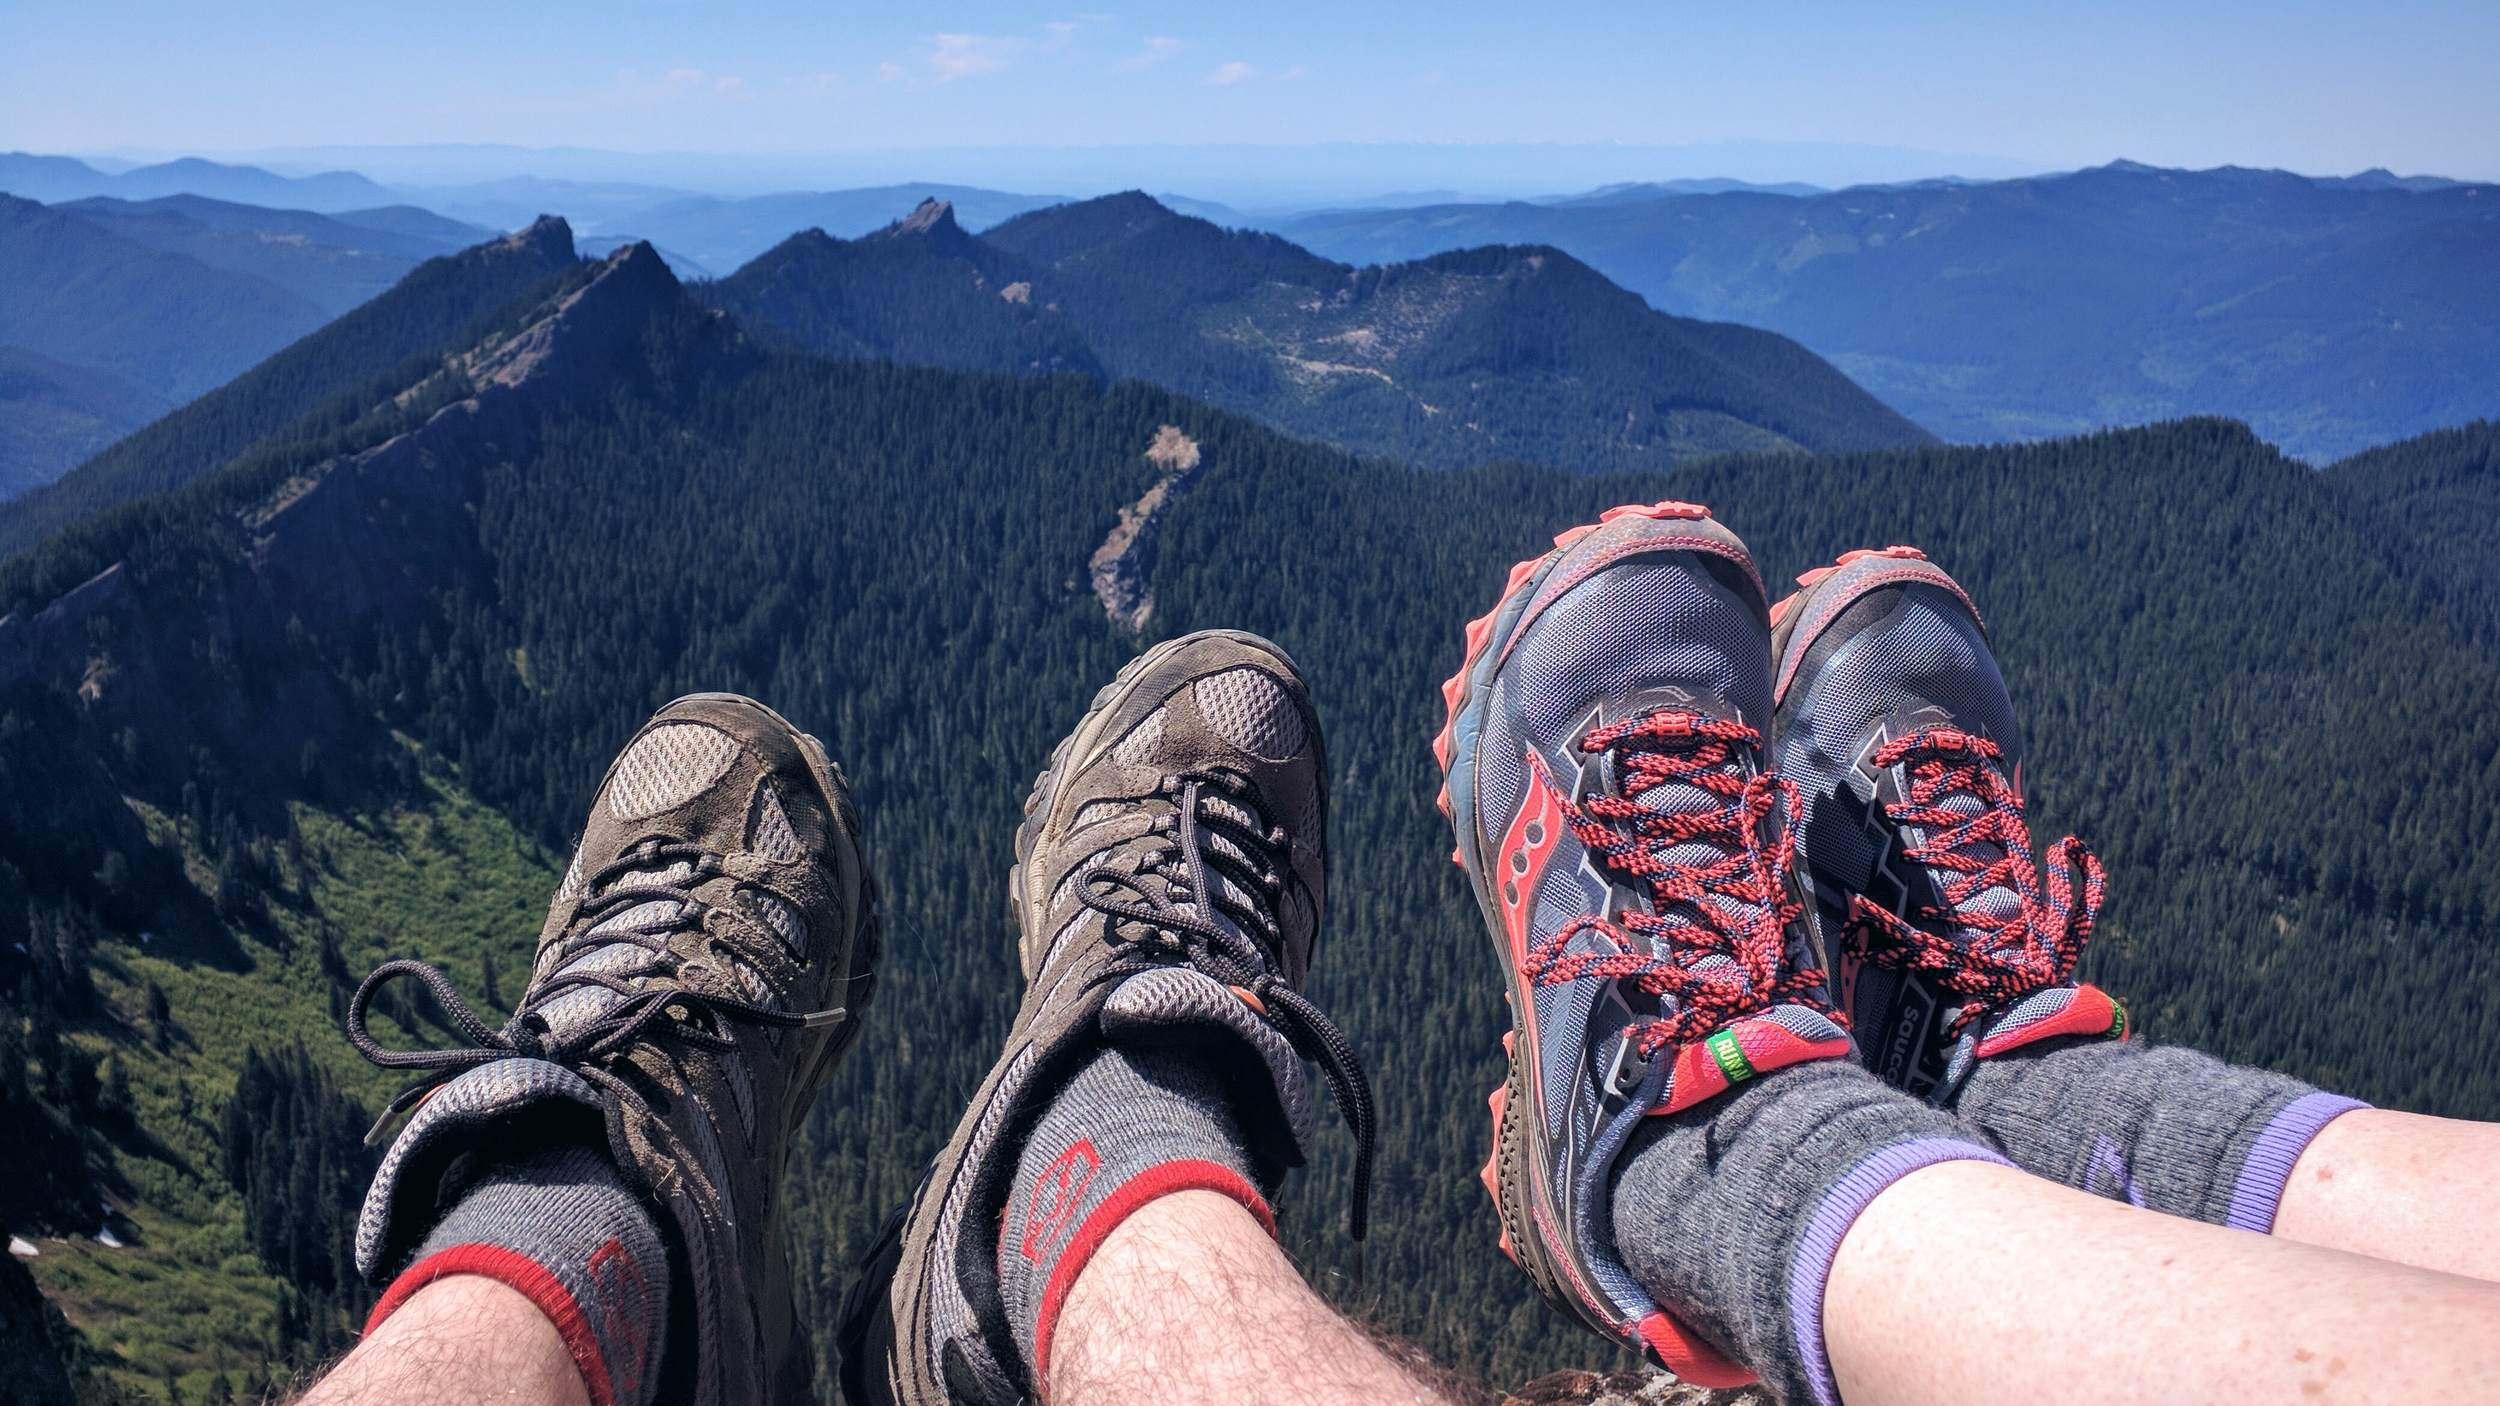 Feet Dangling Over High Rock with Sawtooth Ridge in the Distance